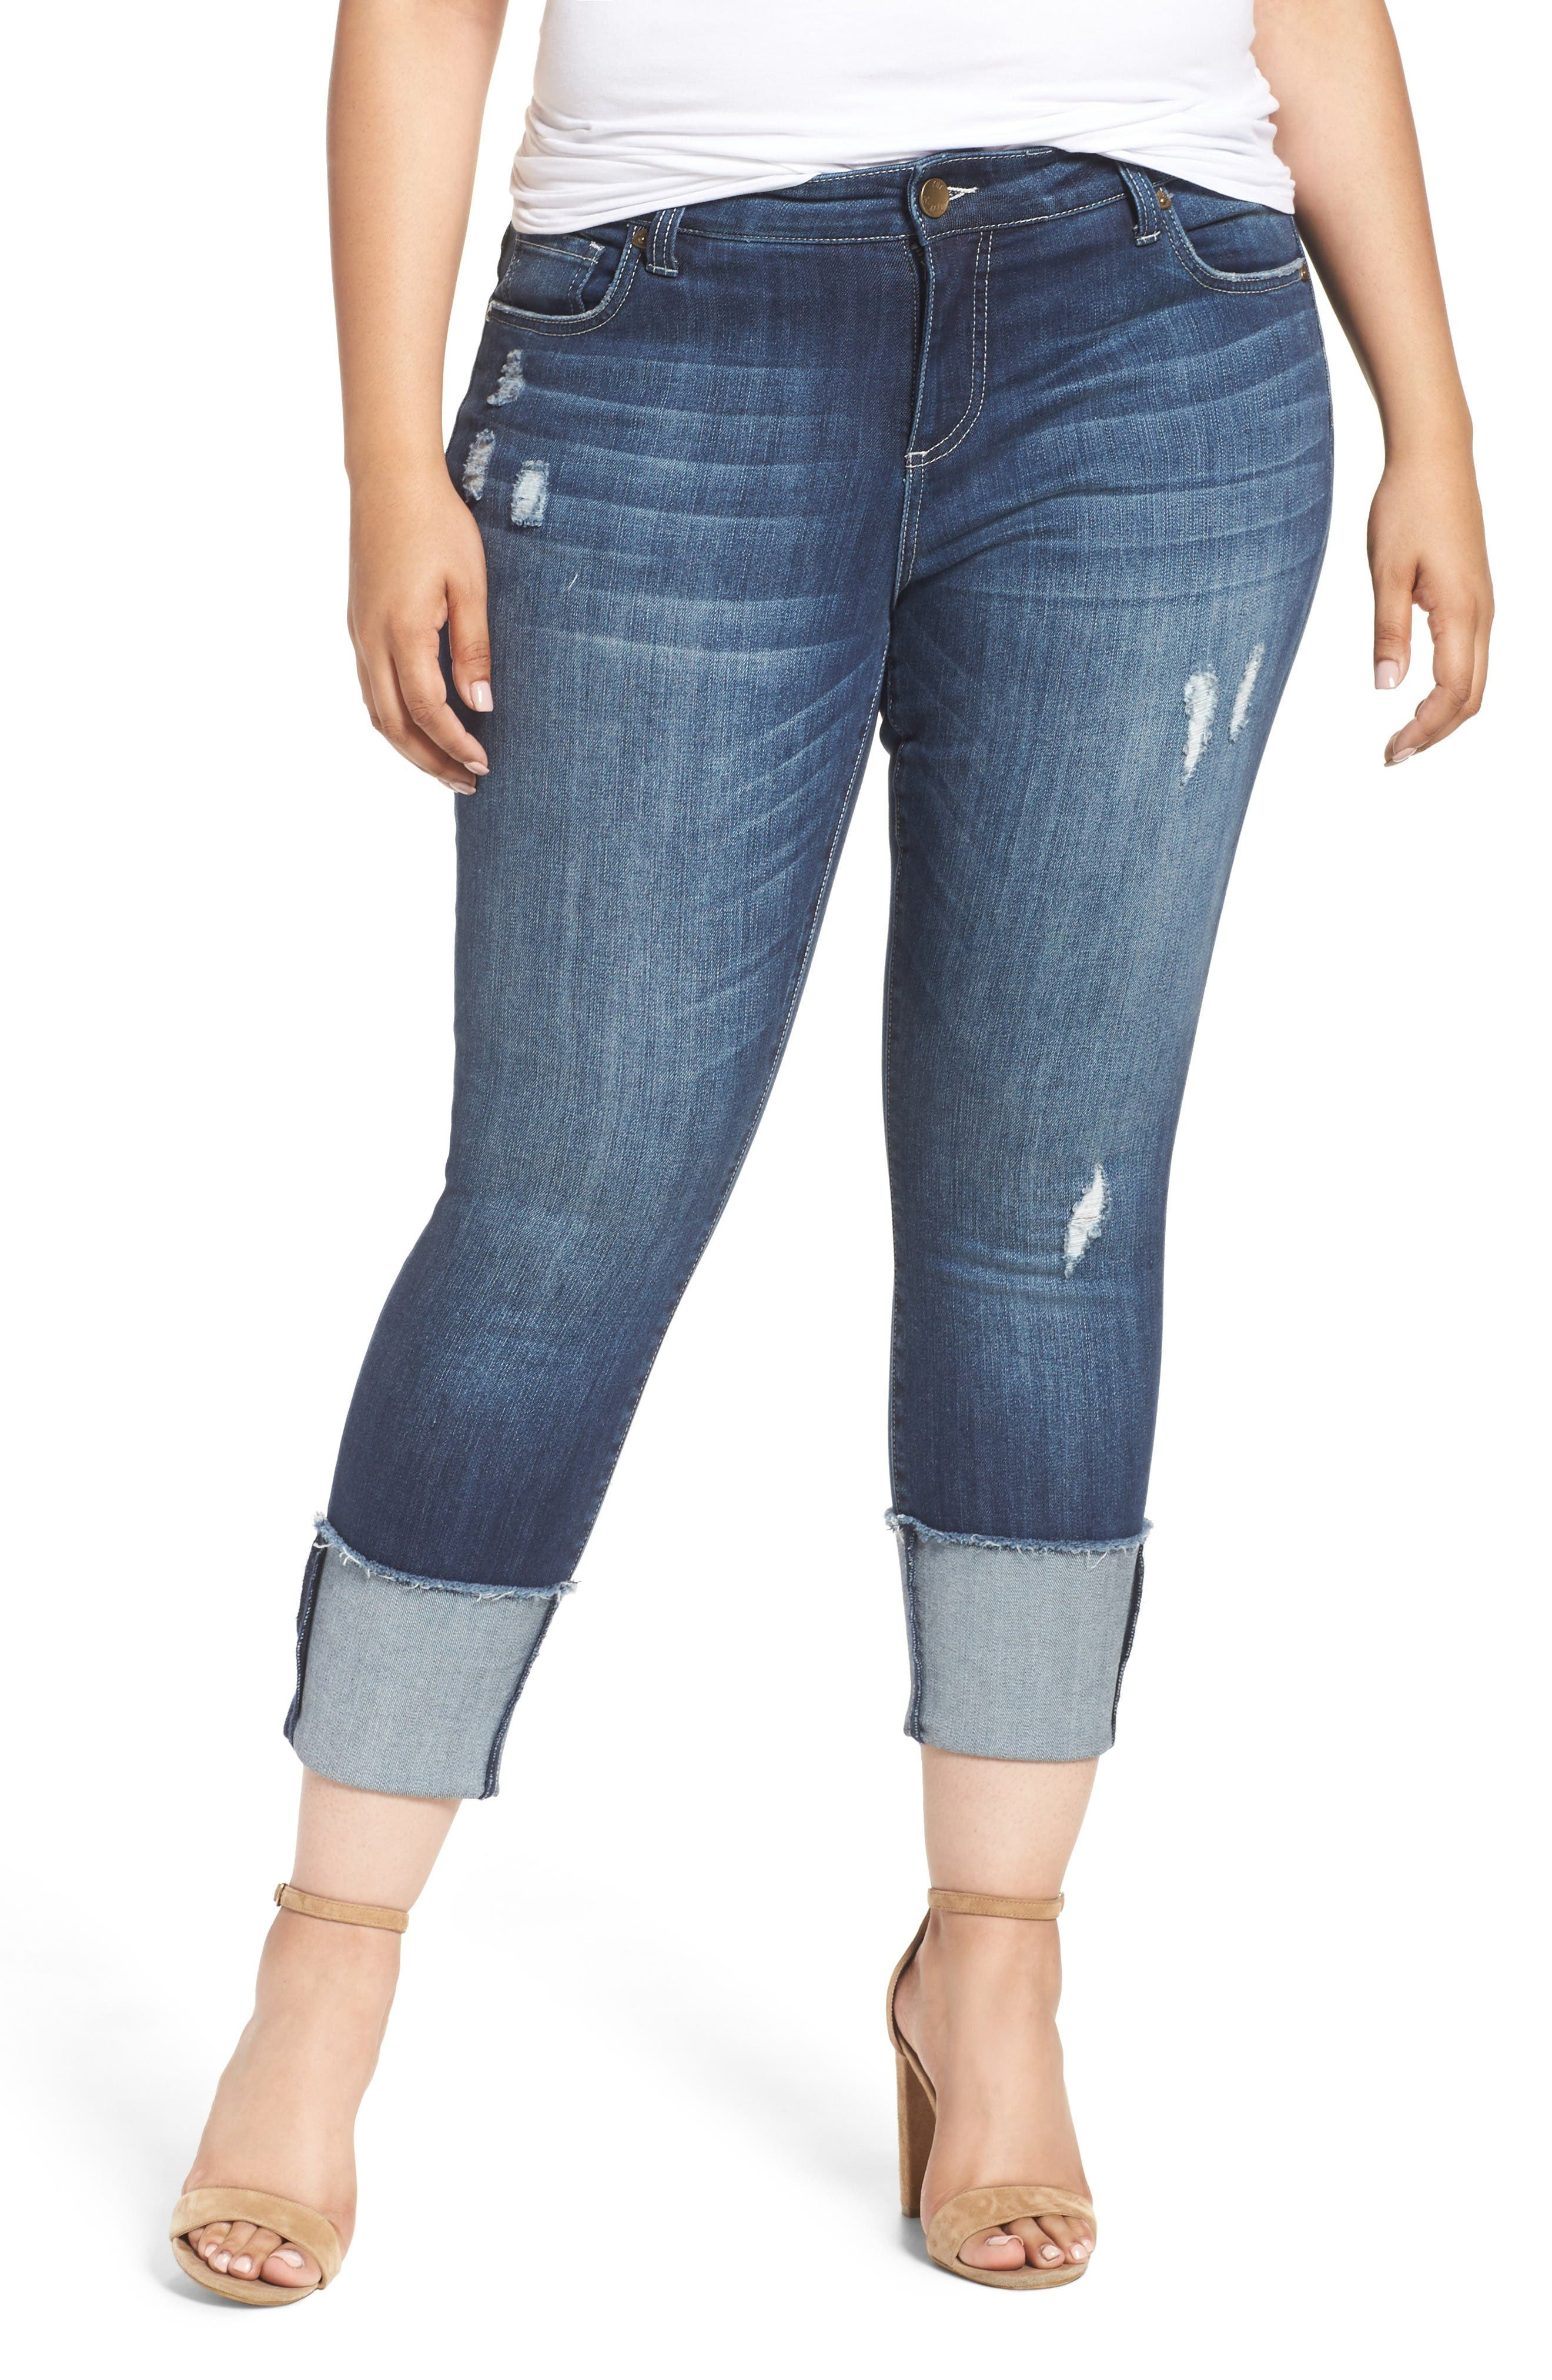 Main Image - KUT from the Kloth Cameron Cuffed Straight Leg Jeans (Arresting) (Plus Size)